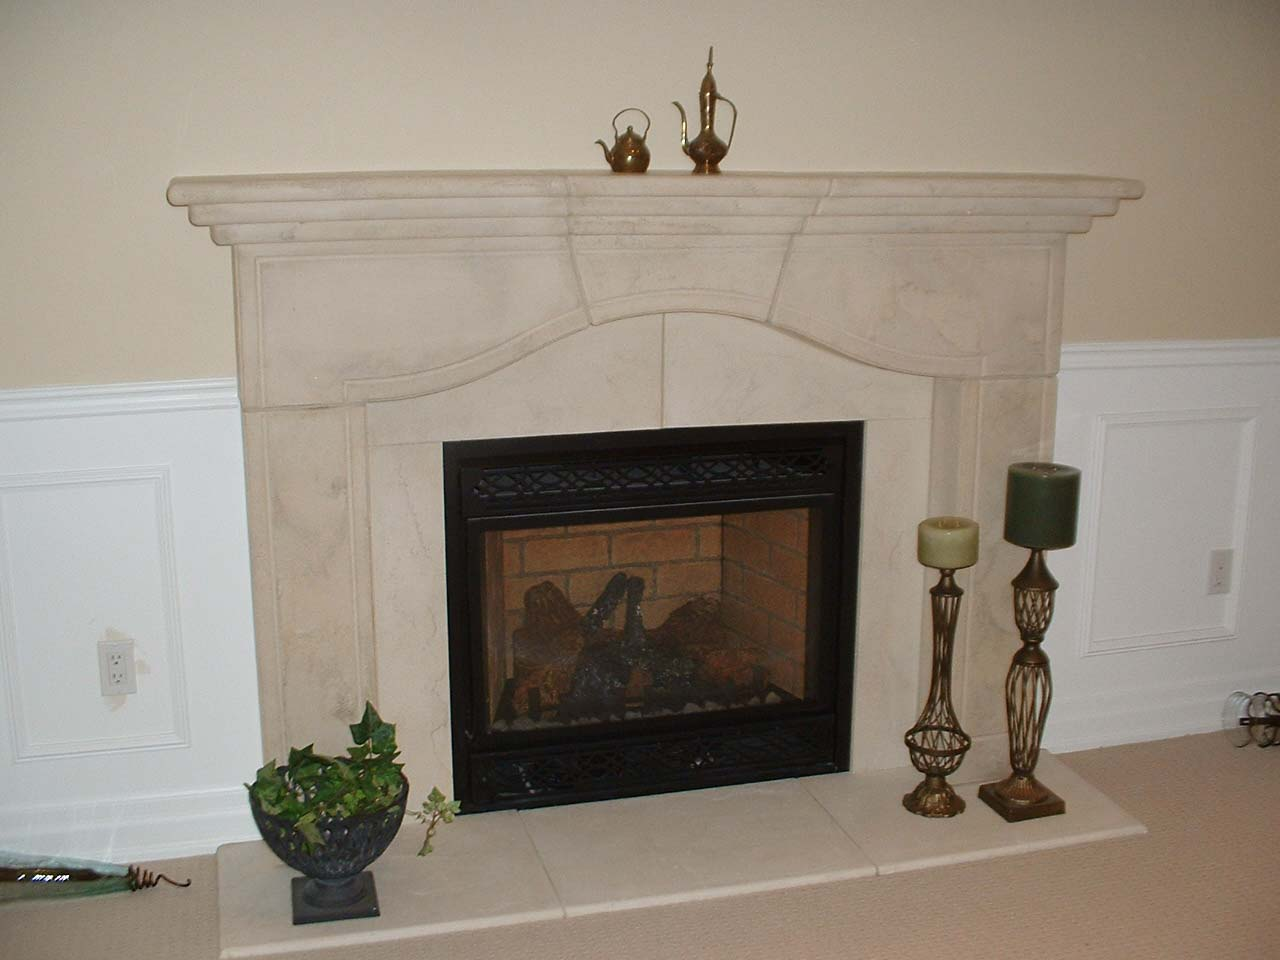 Fire place and mantle in basement renovation.